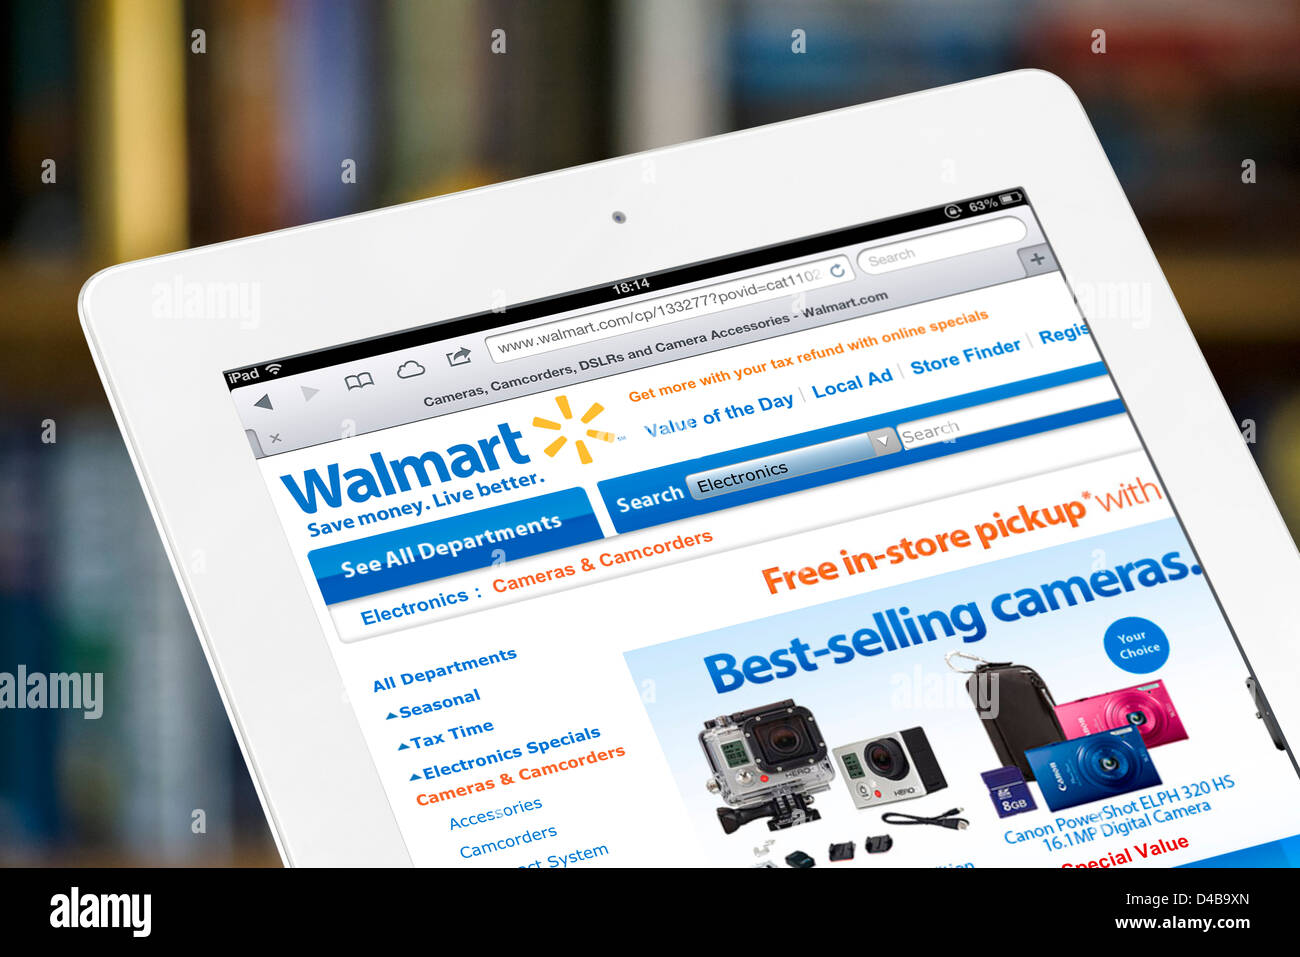 Shopping online on the Walmart.com website, USA - Stock Image